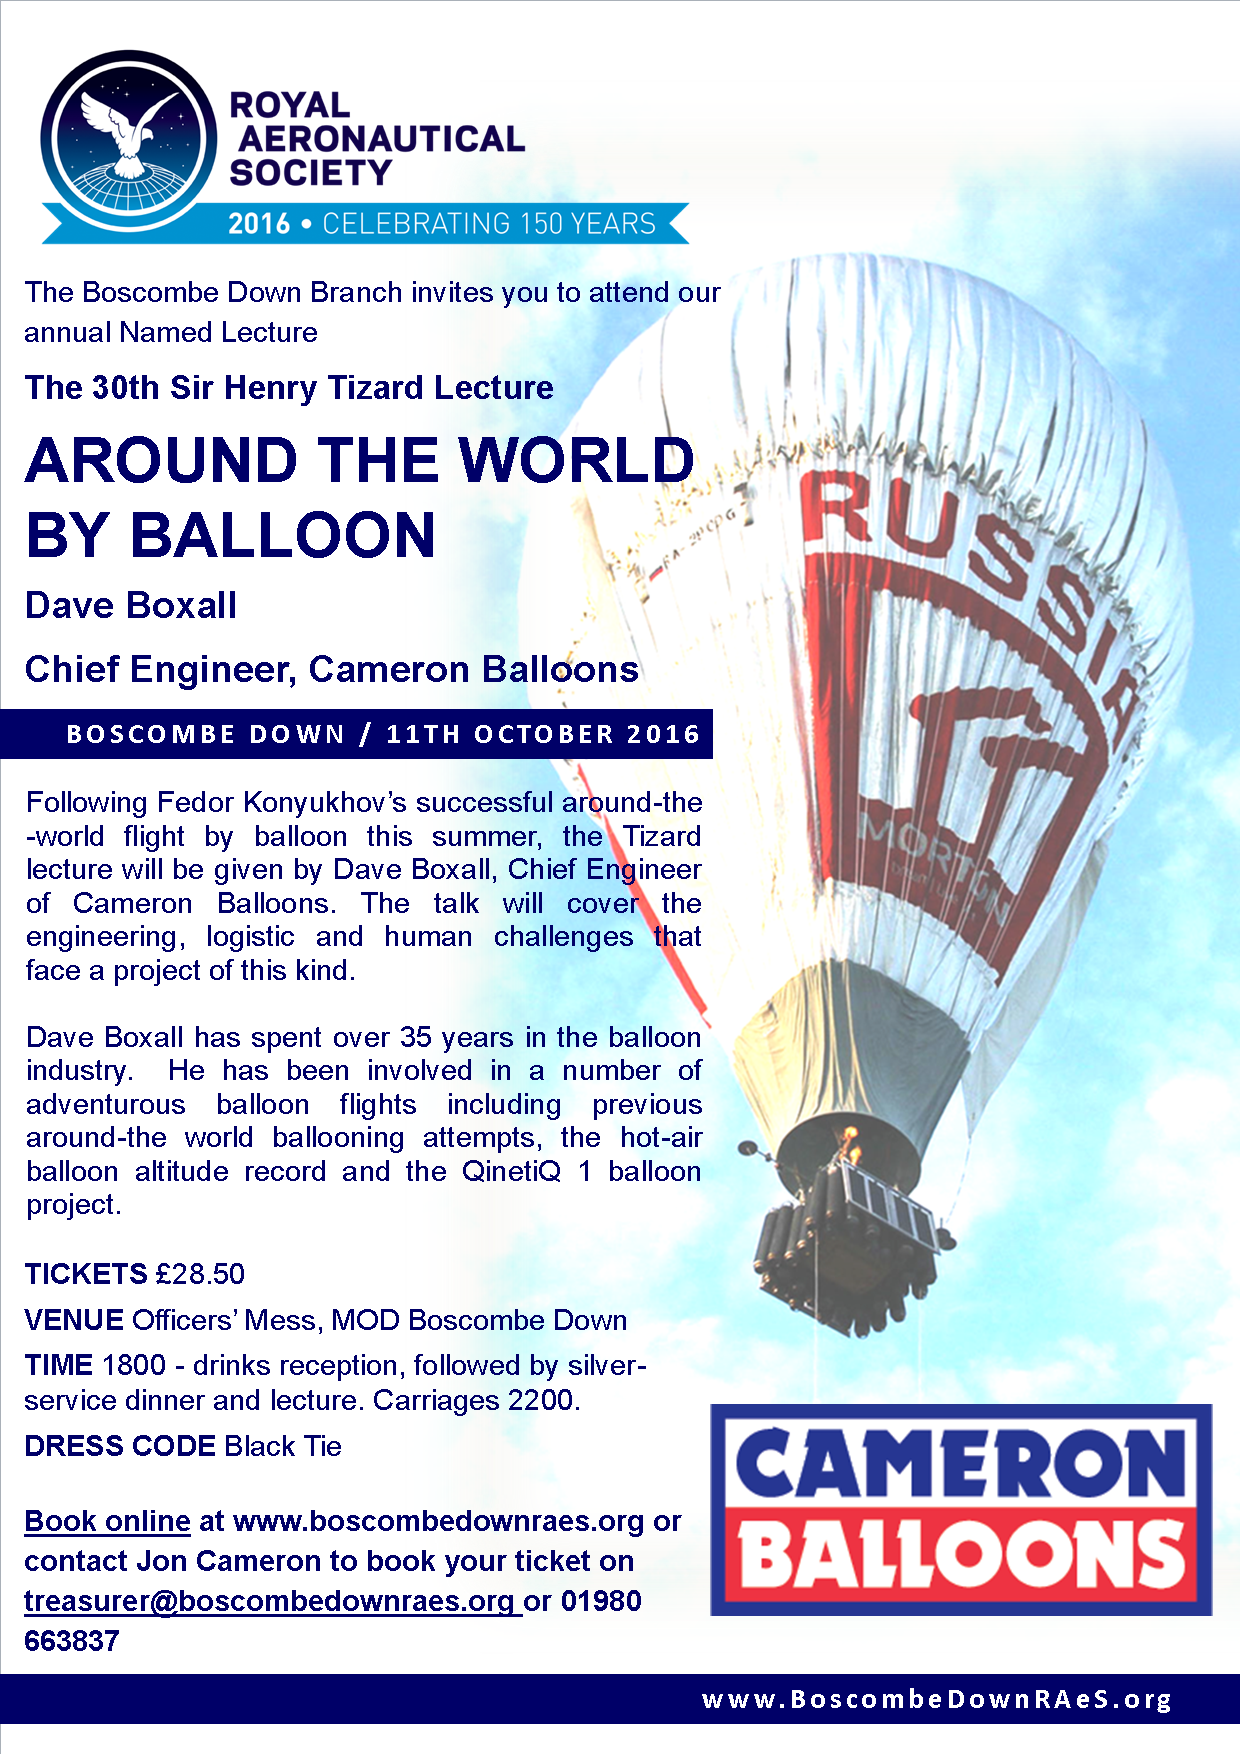 30th Sir Henry Tizard Lecuture: Around the World by Balloon